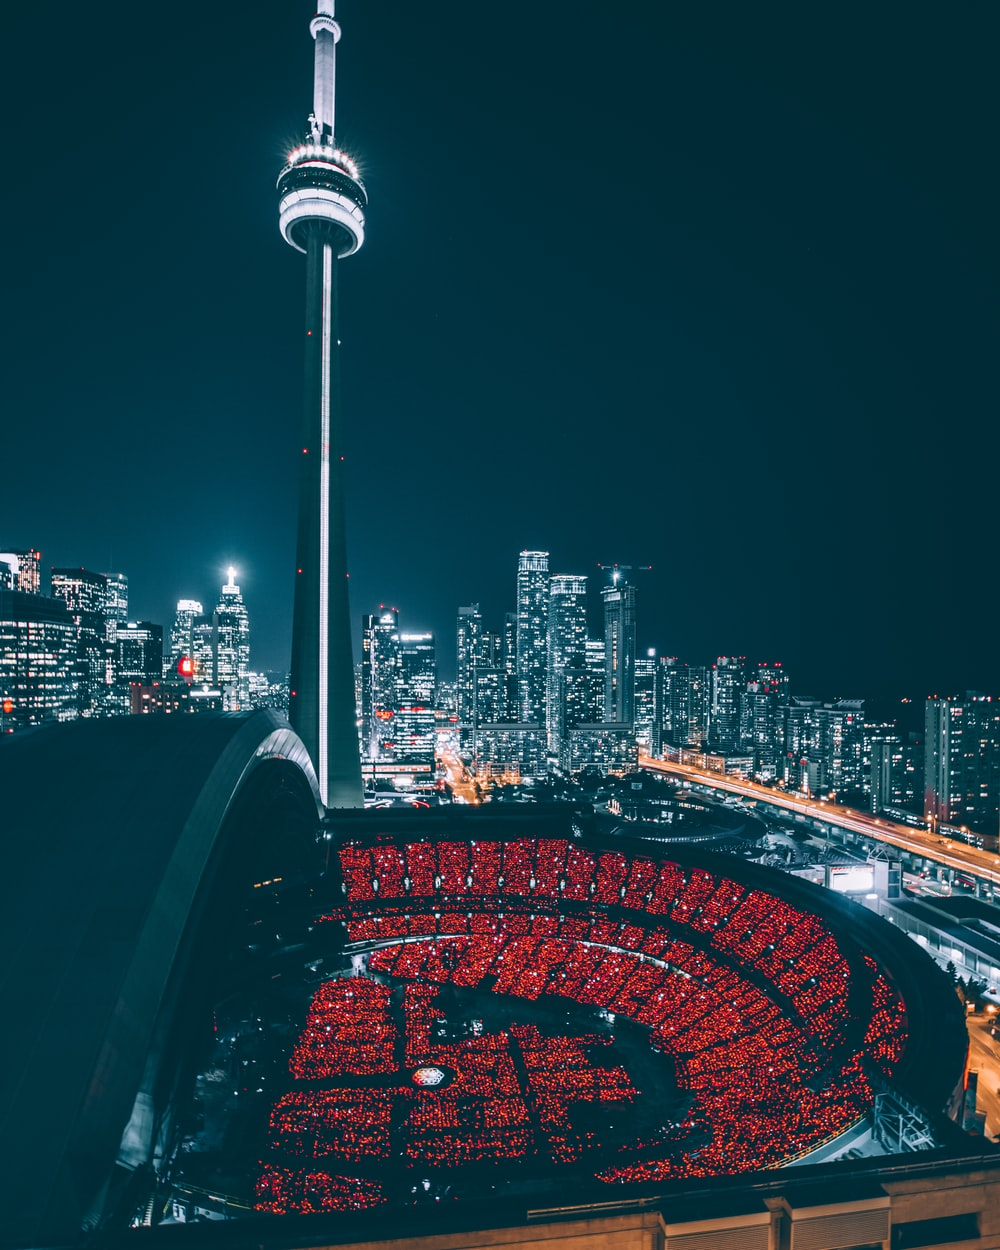 CN Tower at nighttime